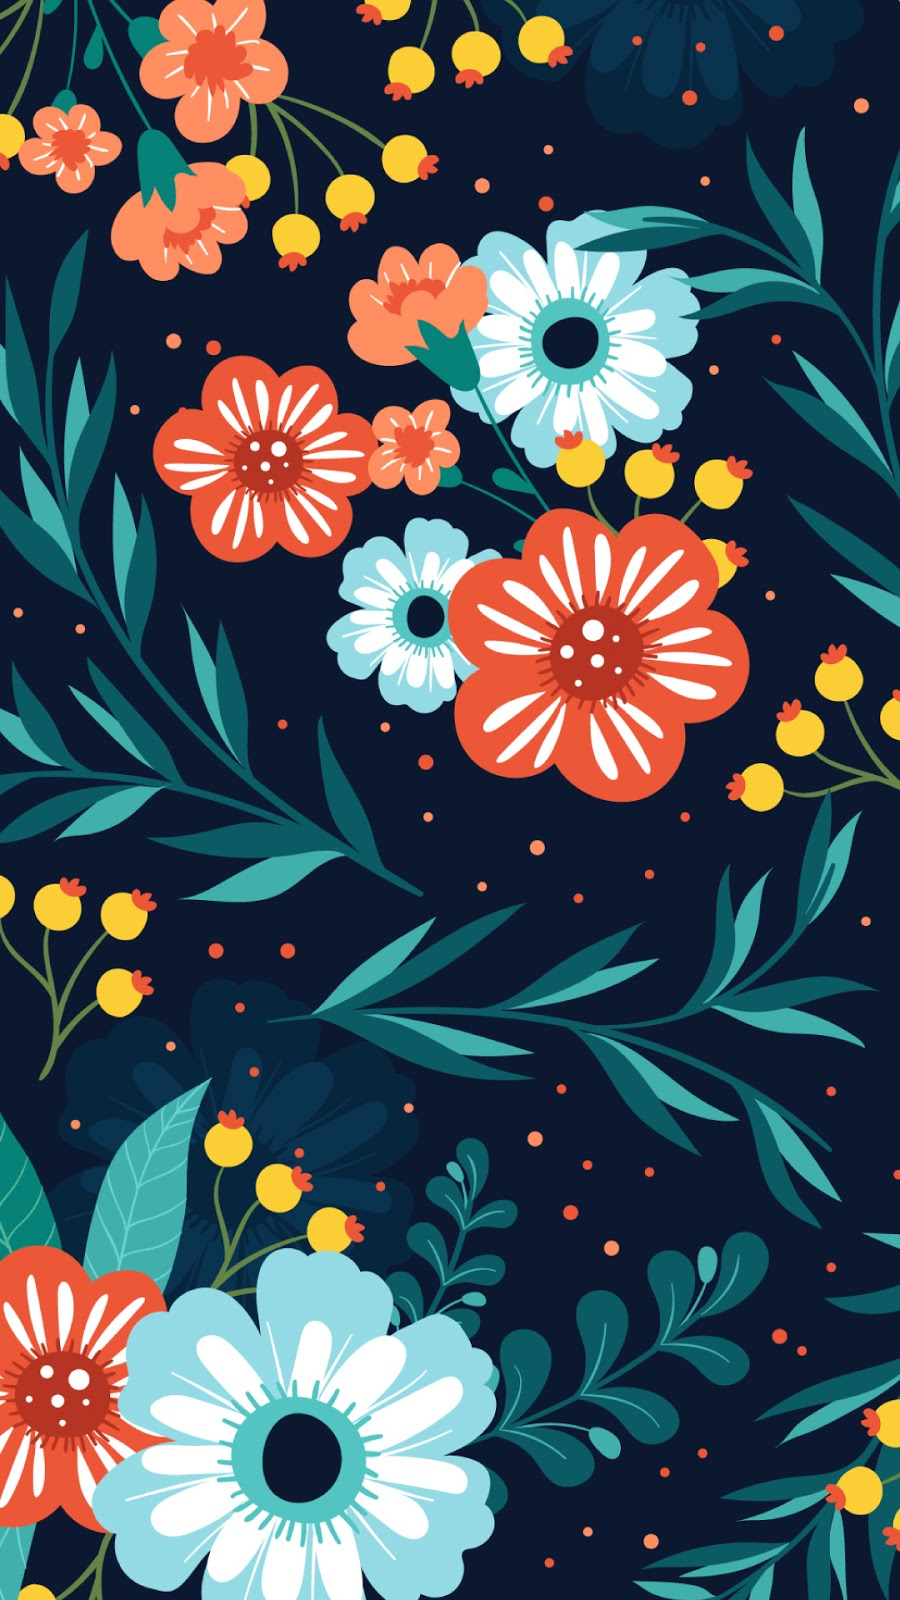 20 Vector Floral Wallpaper And Background Download Free Hd Images